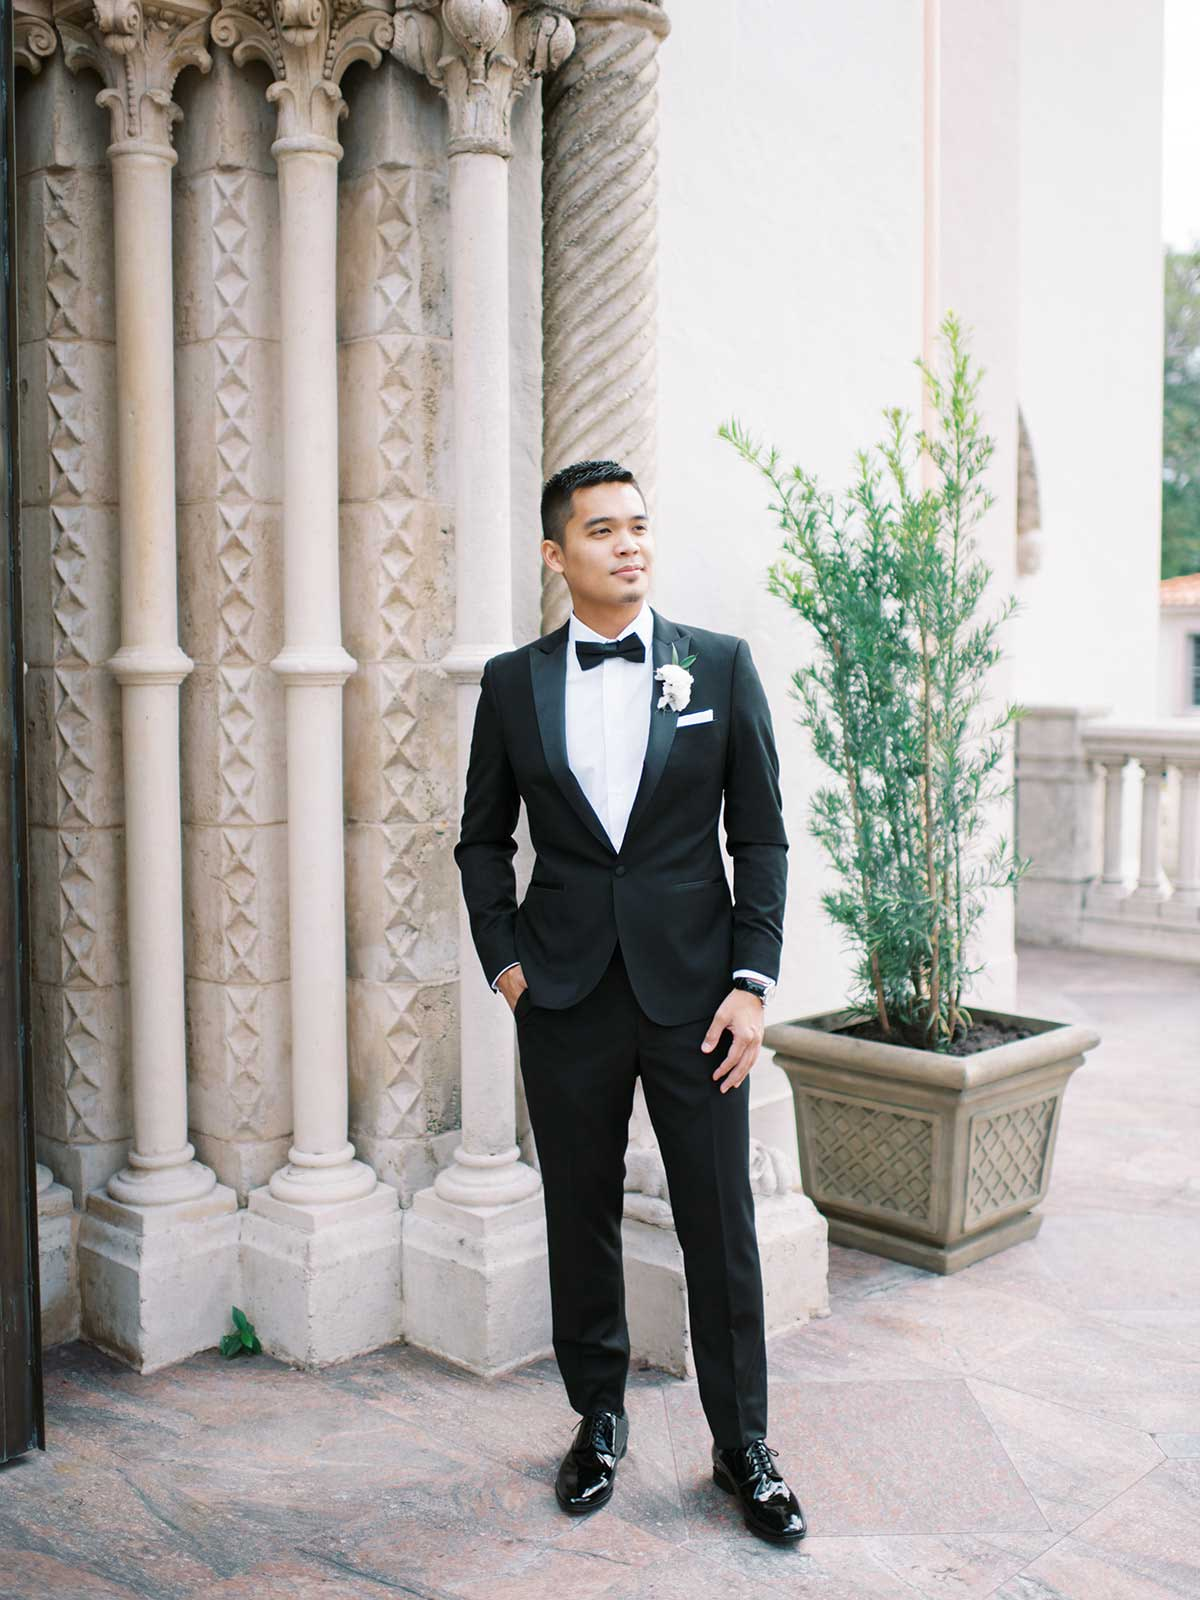 groom poses for photo in his tux and boutonniere.